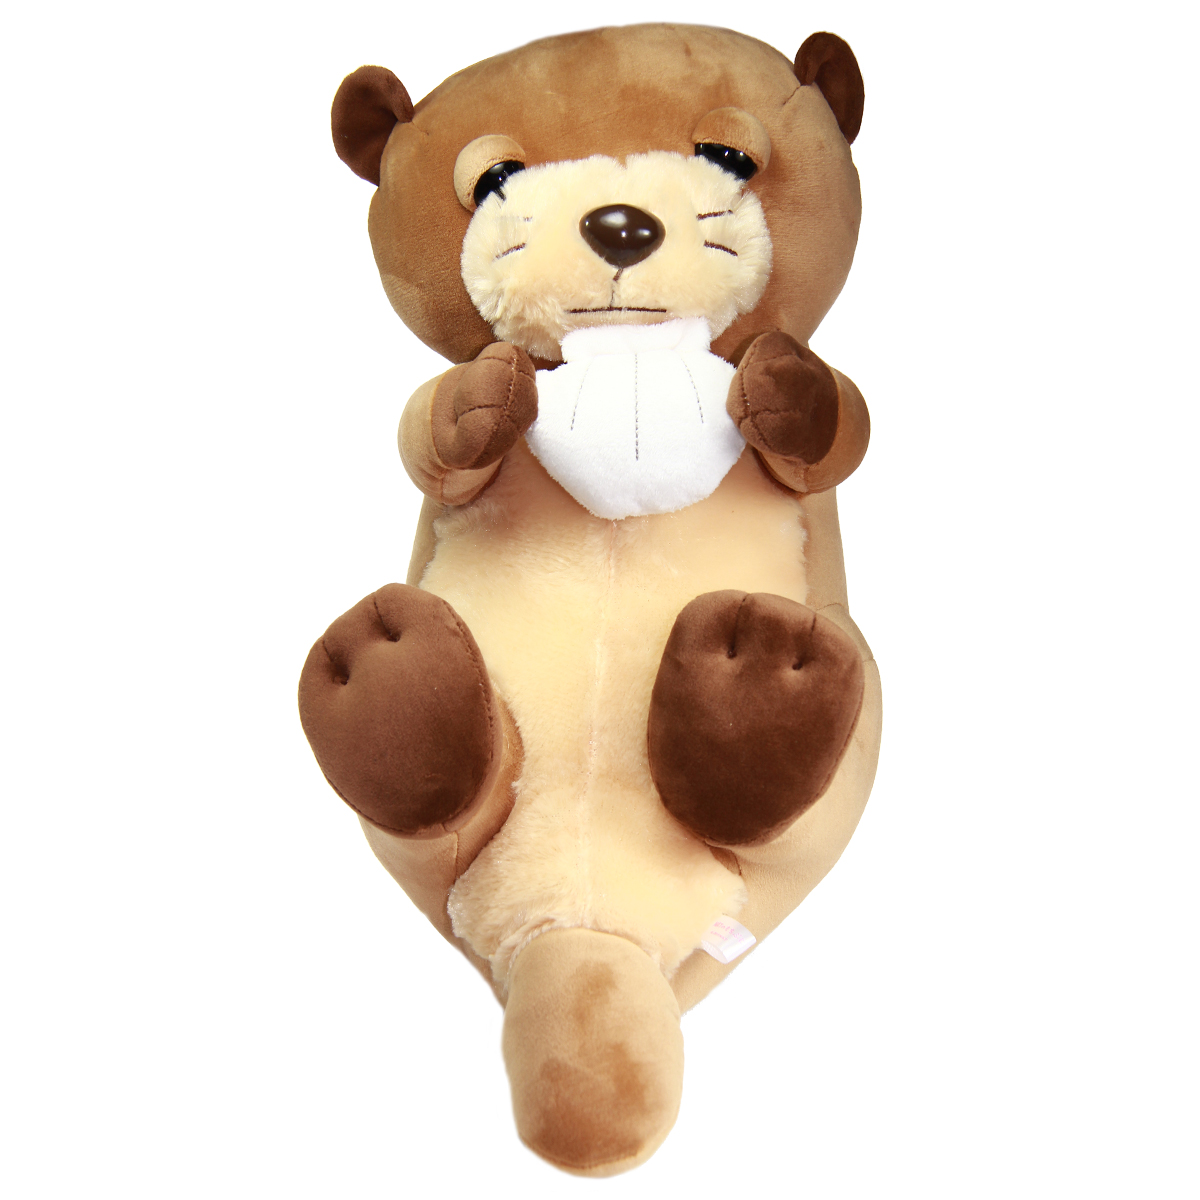 Mochi Puni Kawauso Collection Soft Sleepy Otter Plush Toy With Sea Shell Brown 17 Inches